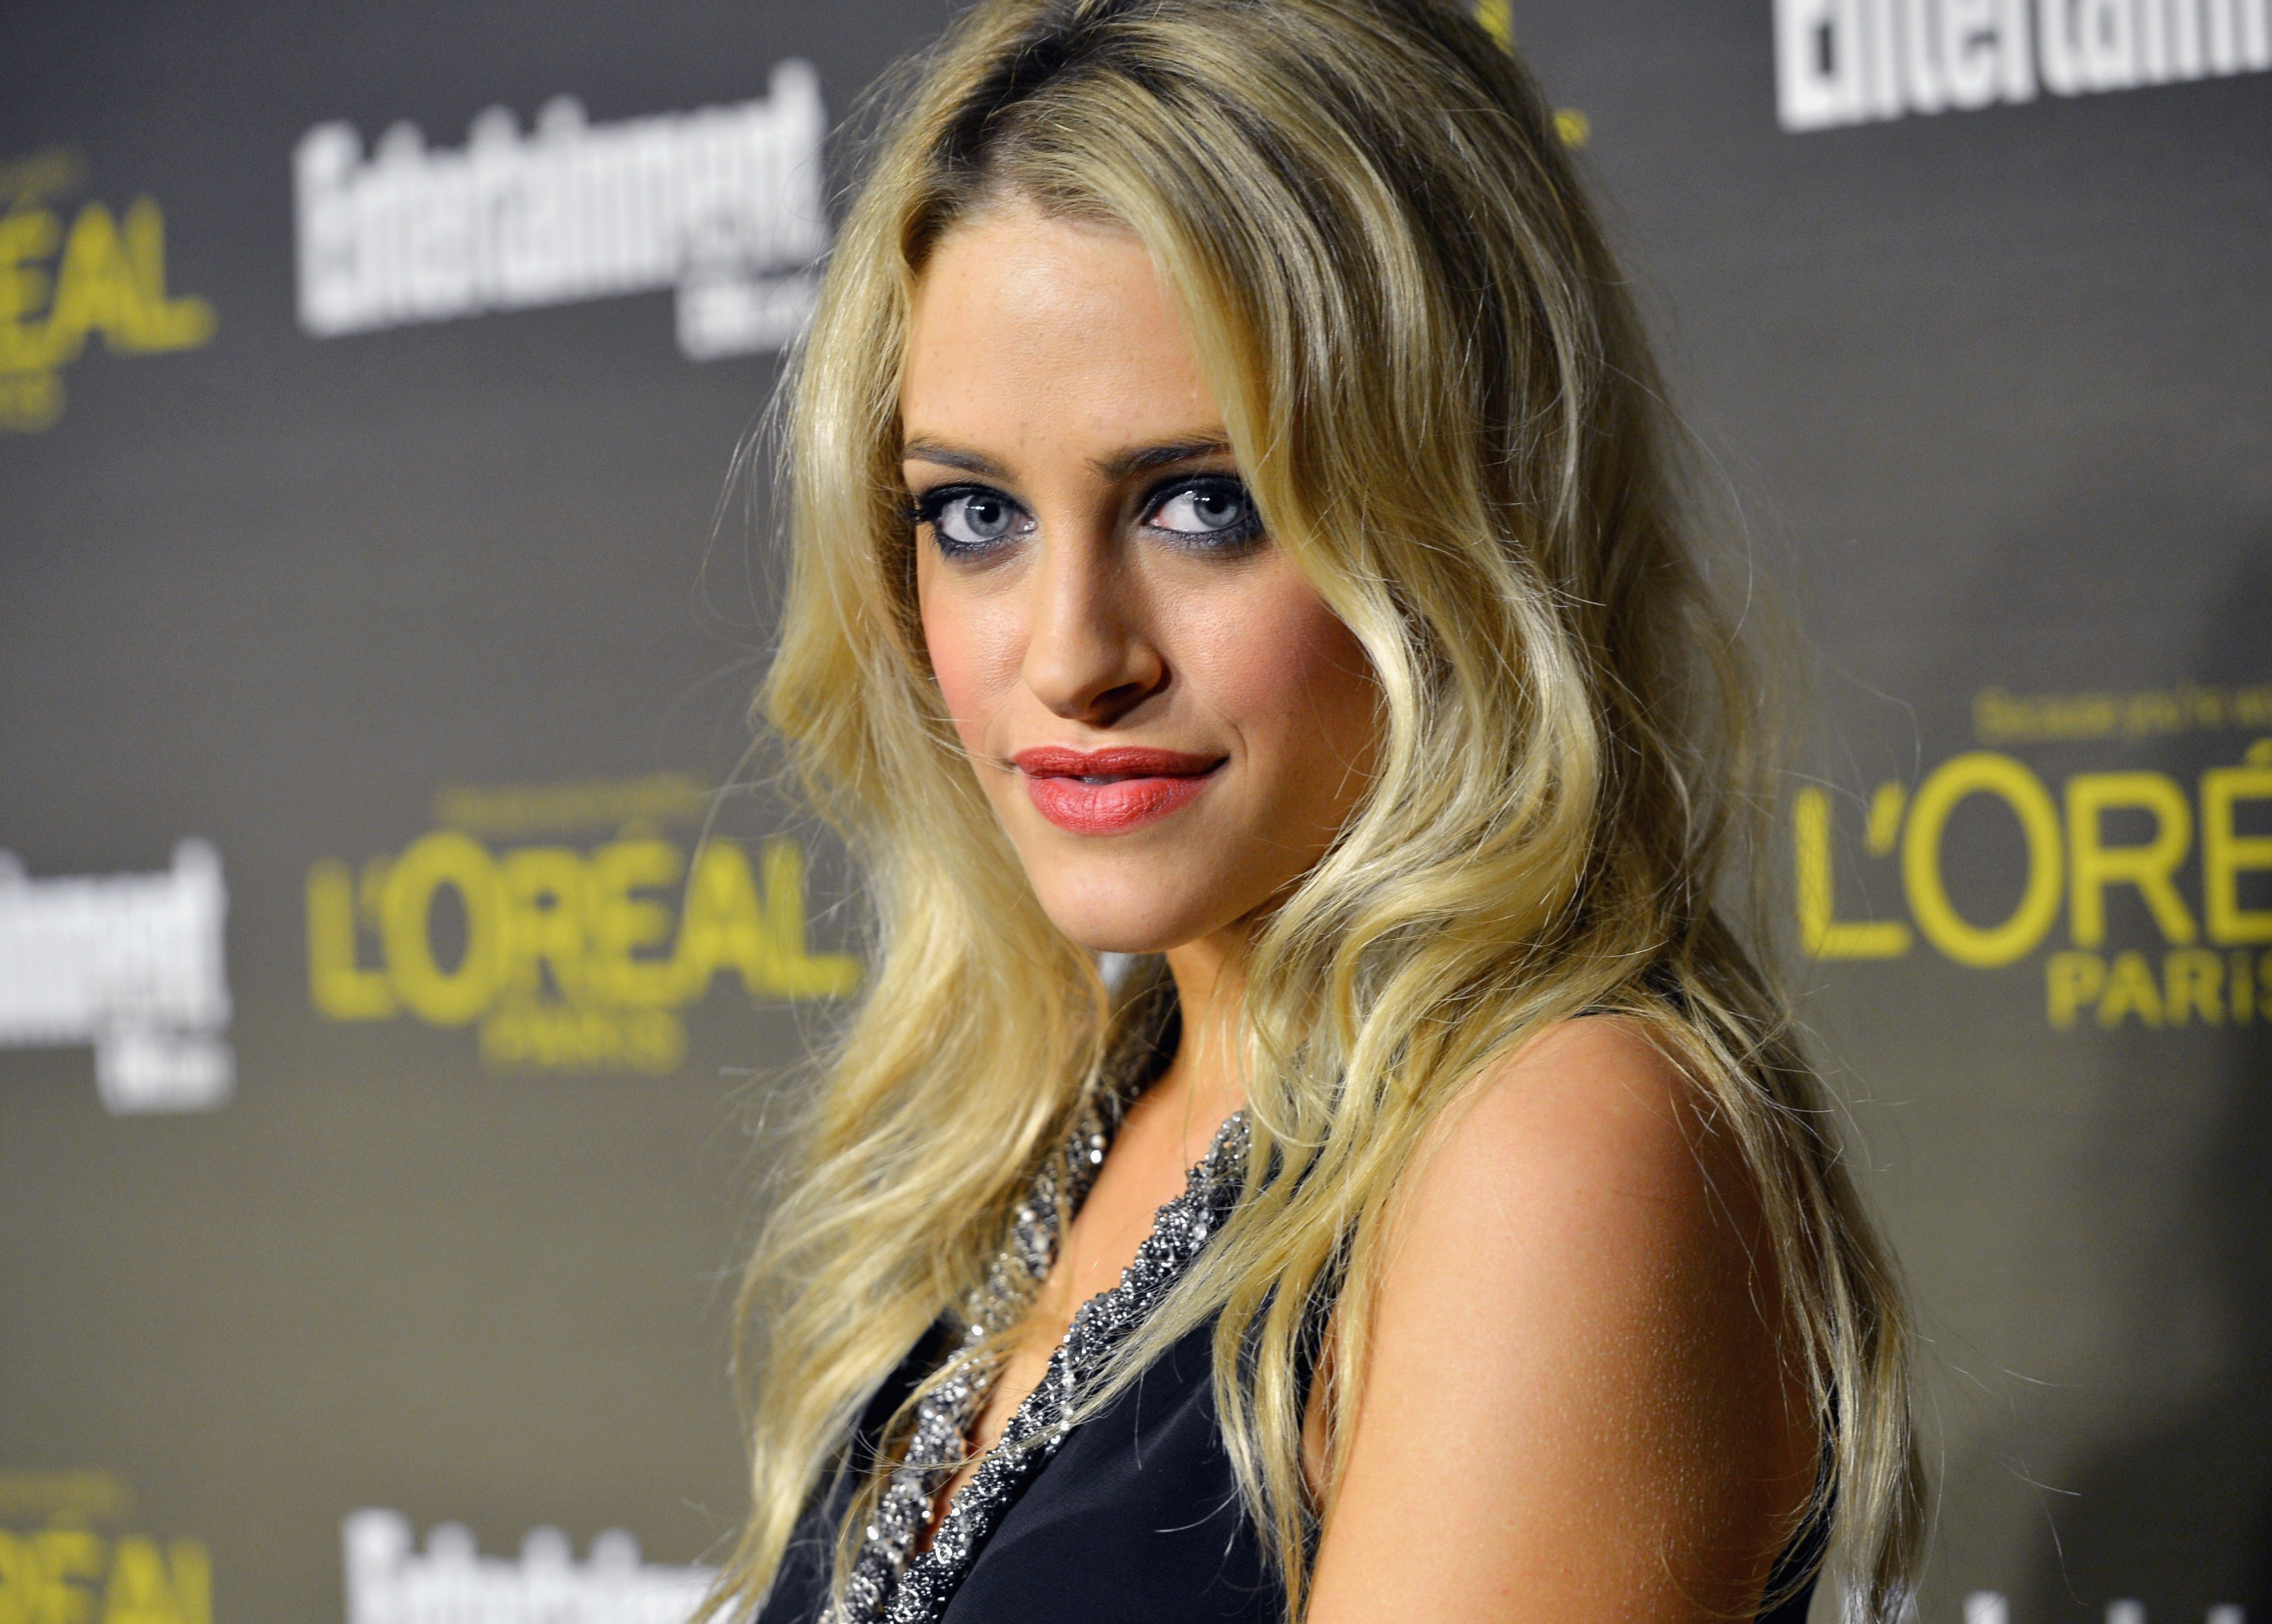 Celebrity Carly Chaikin naked (91 foto and video), Pussy, Paparazzi, Boobs, braless 2018